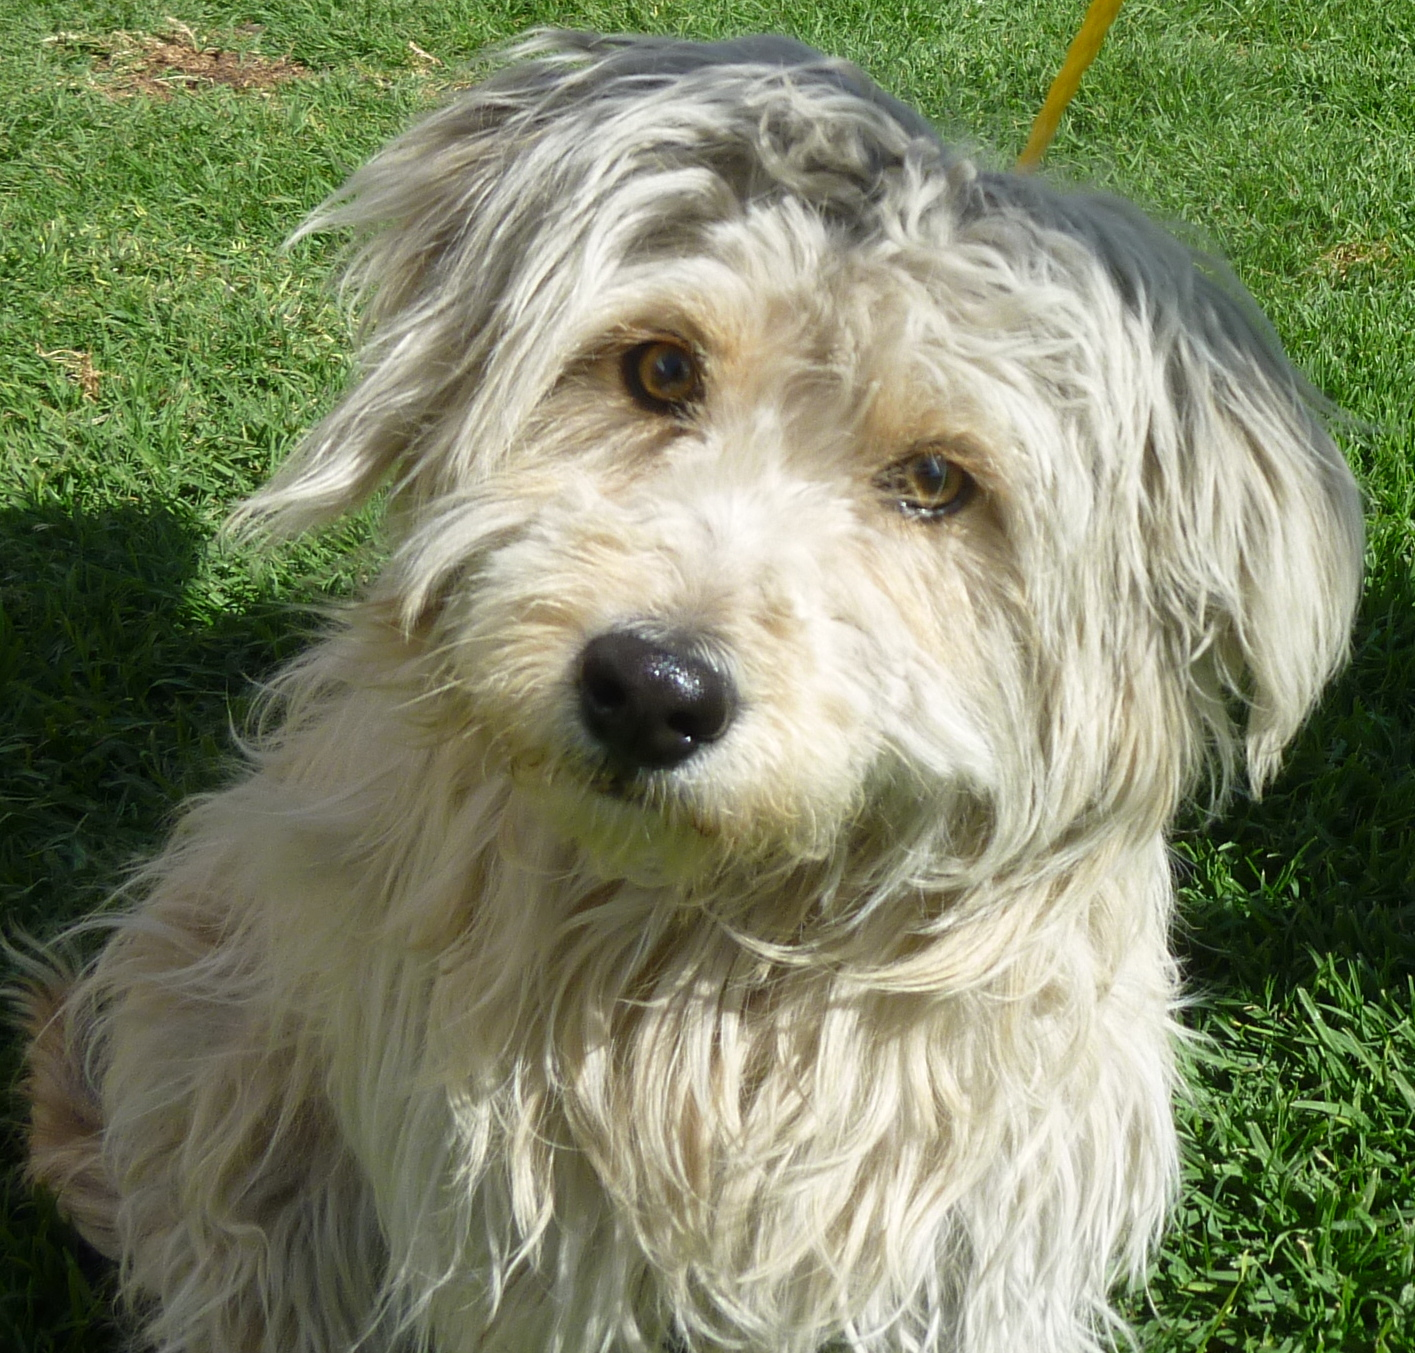 little shaggy dog breeds howard county real estate shaggy dog maryland eileen robbins team of